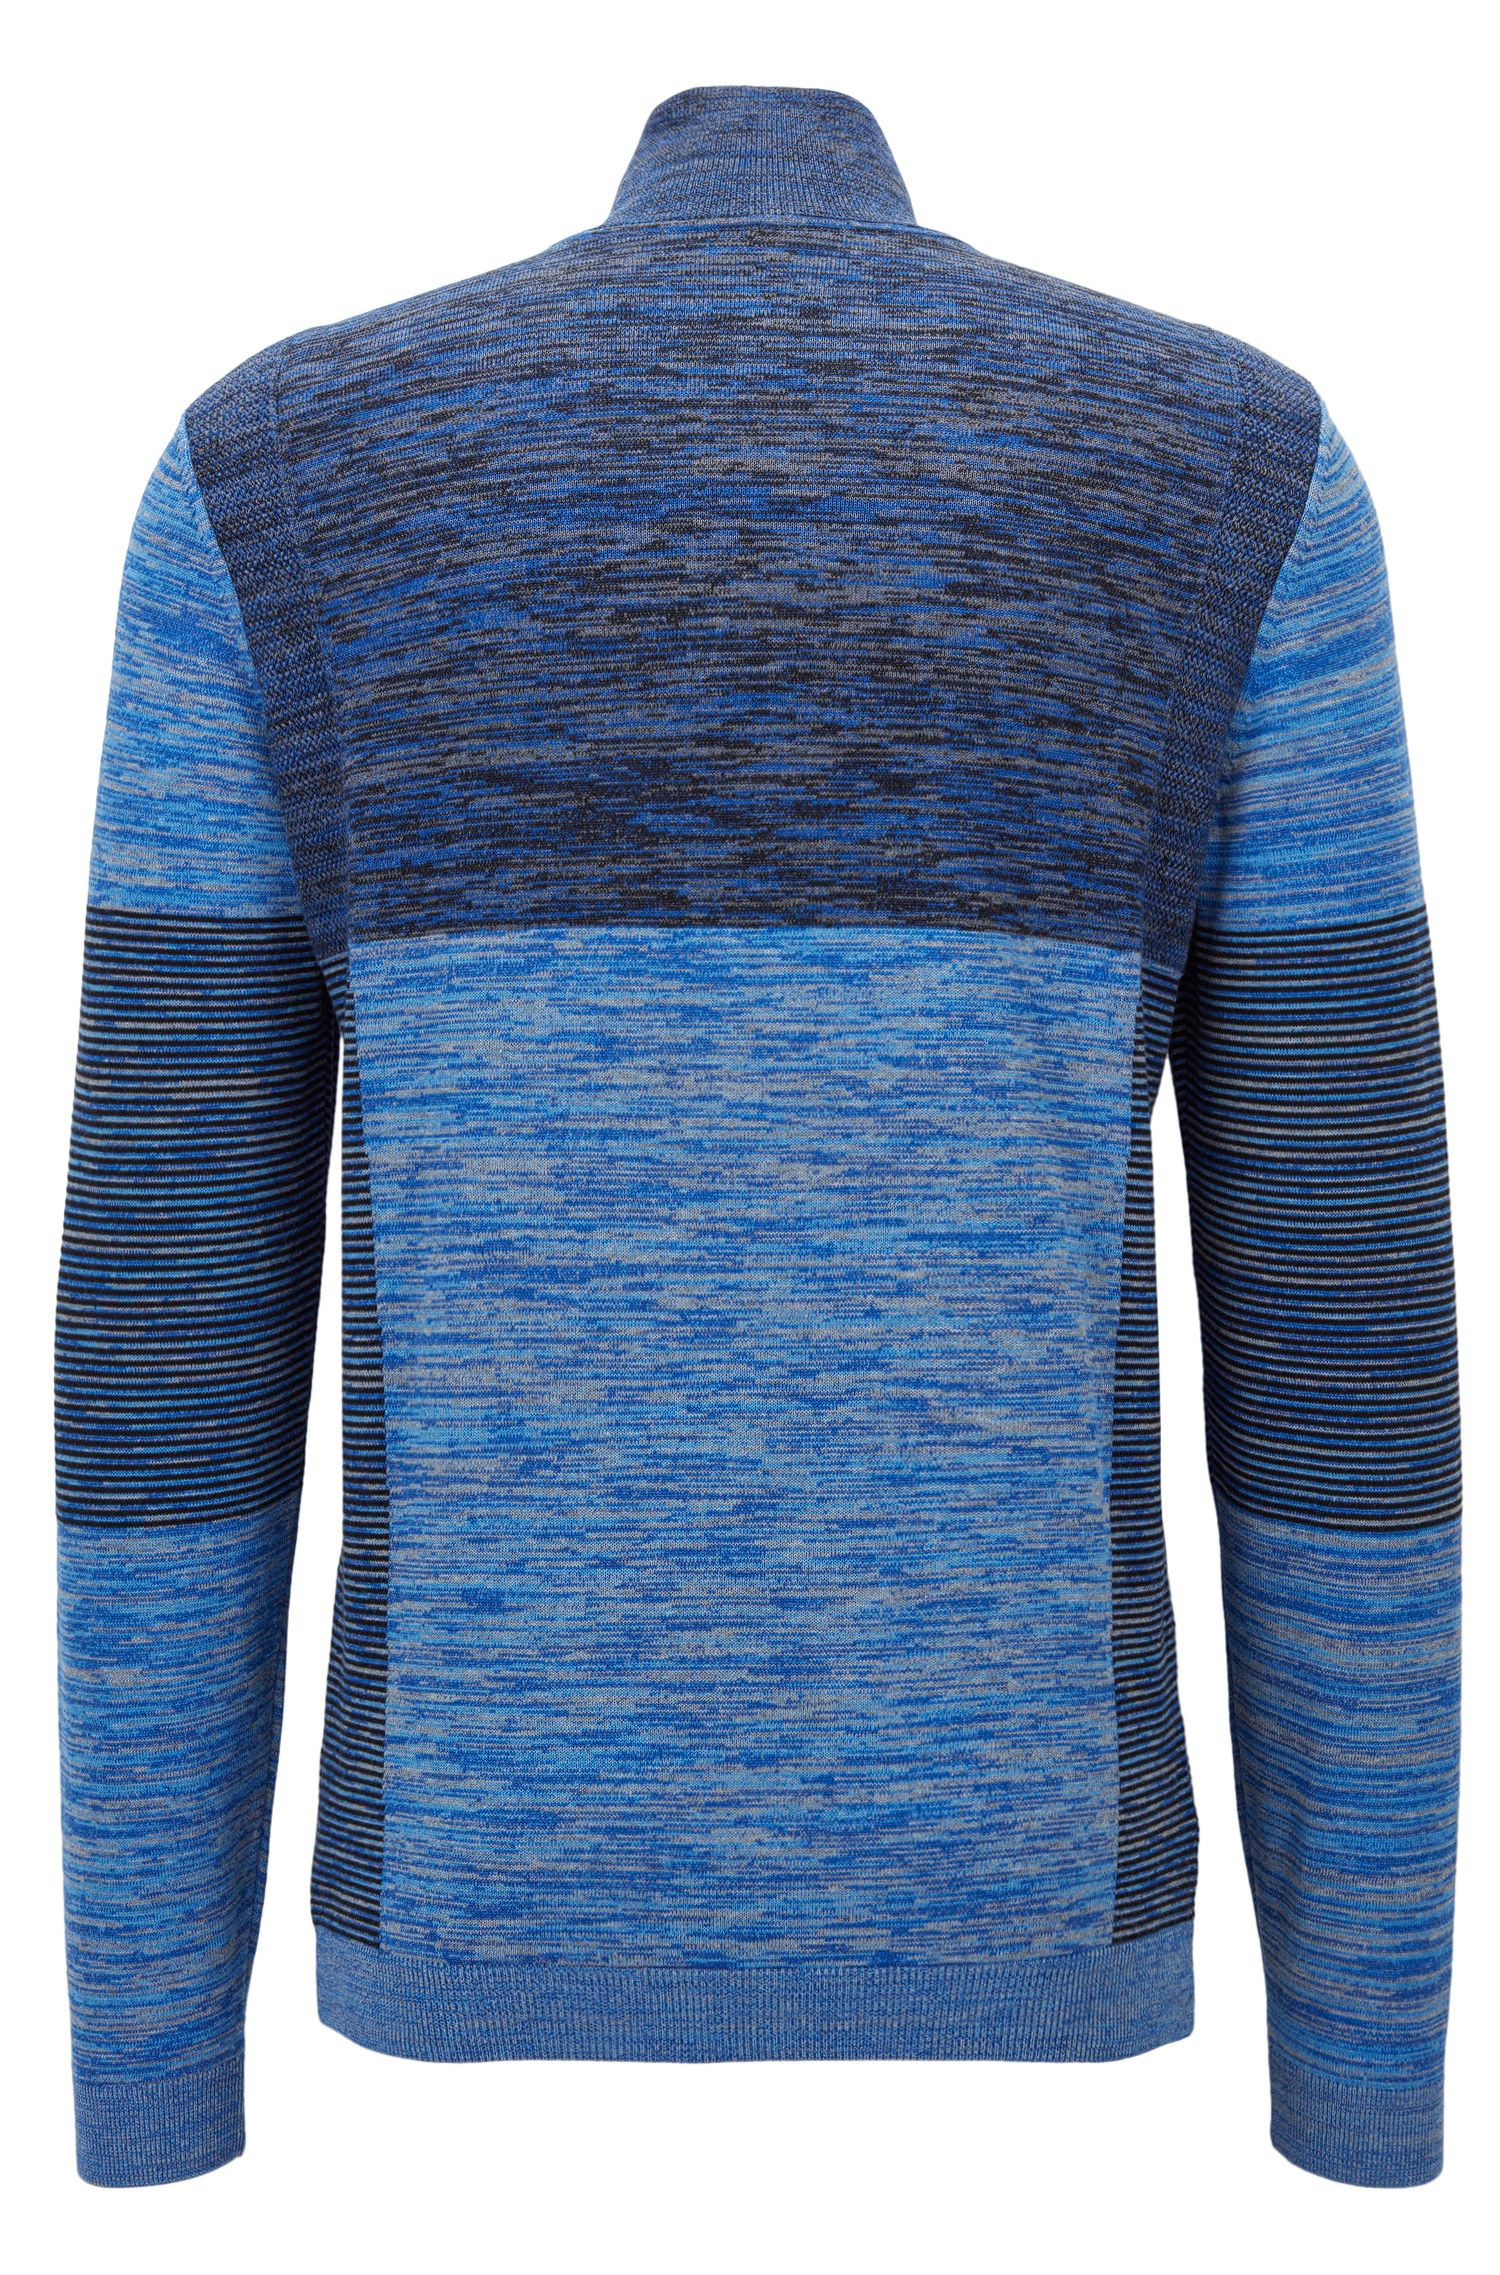 Colorblocked Melange Stretch Cotton Half-Zip Sweater | Zadok Pro